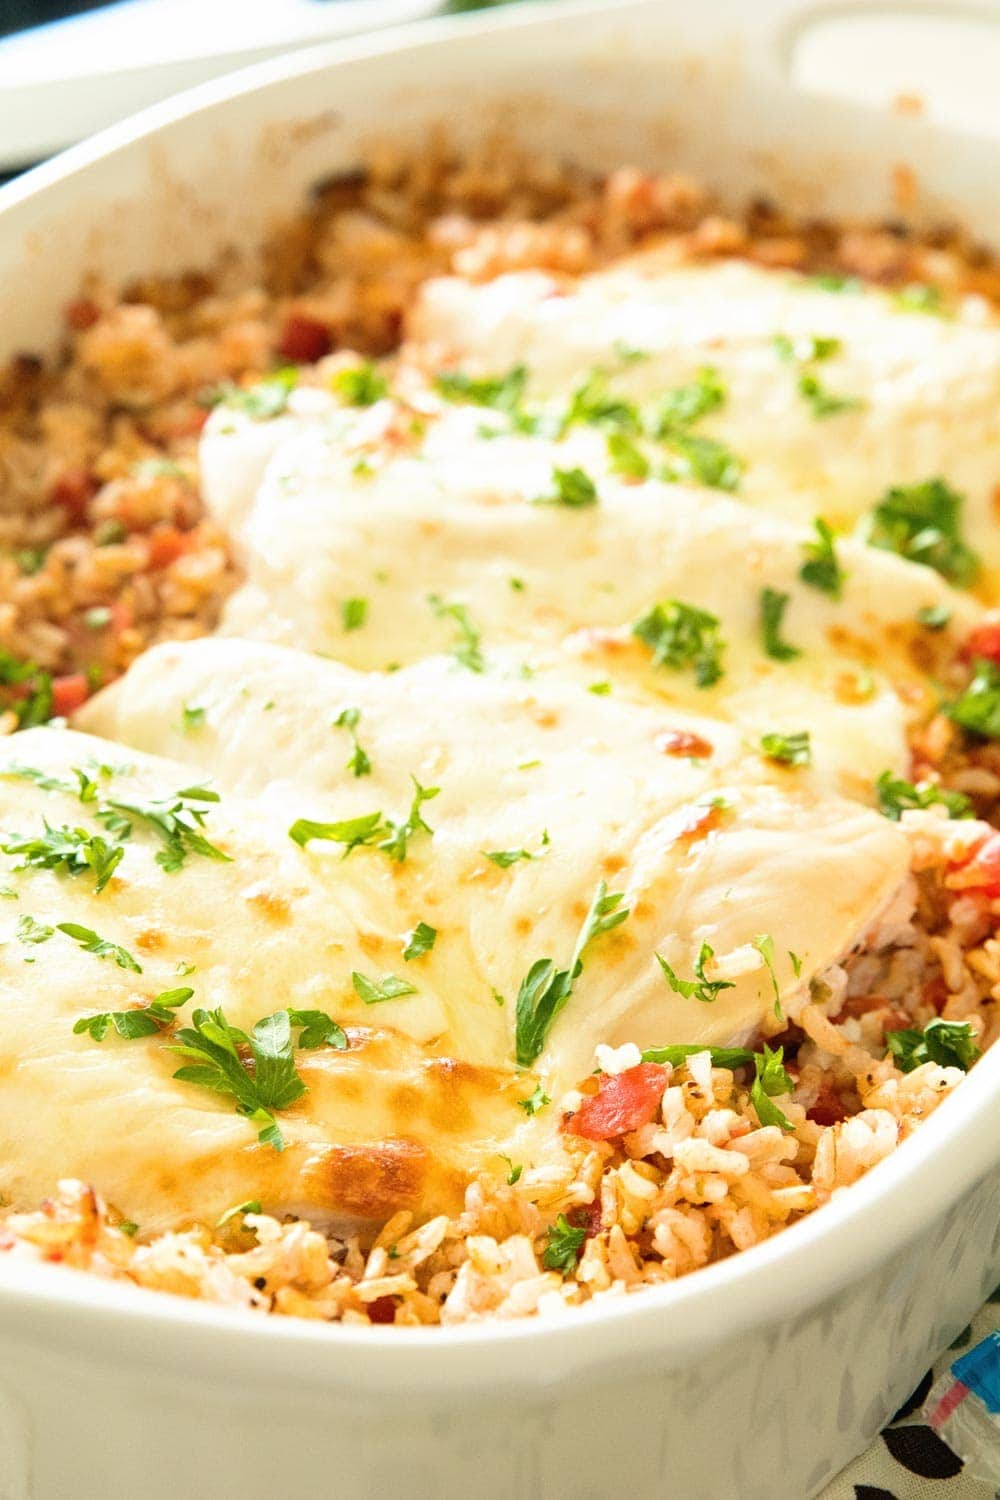 Italian Cheesy Chicken And Rice Casserole Recipe The Ultimate One Dish That Is Light